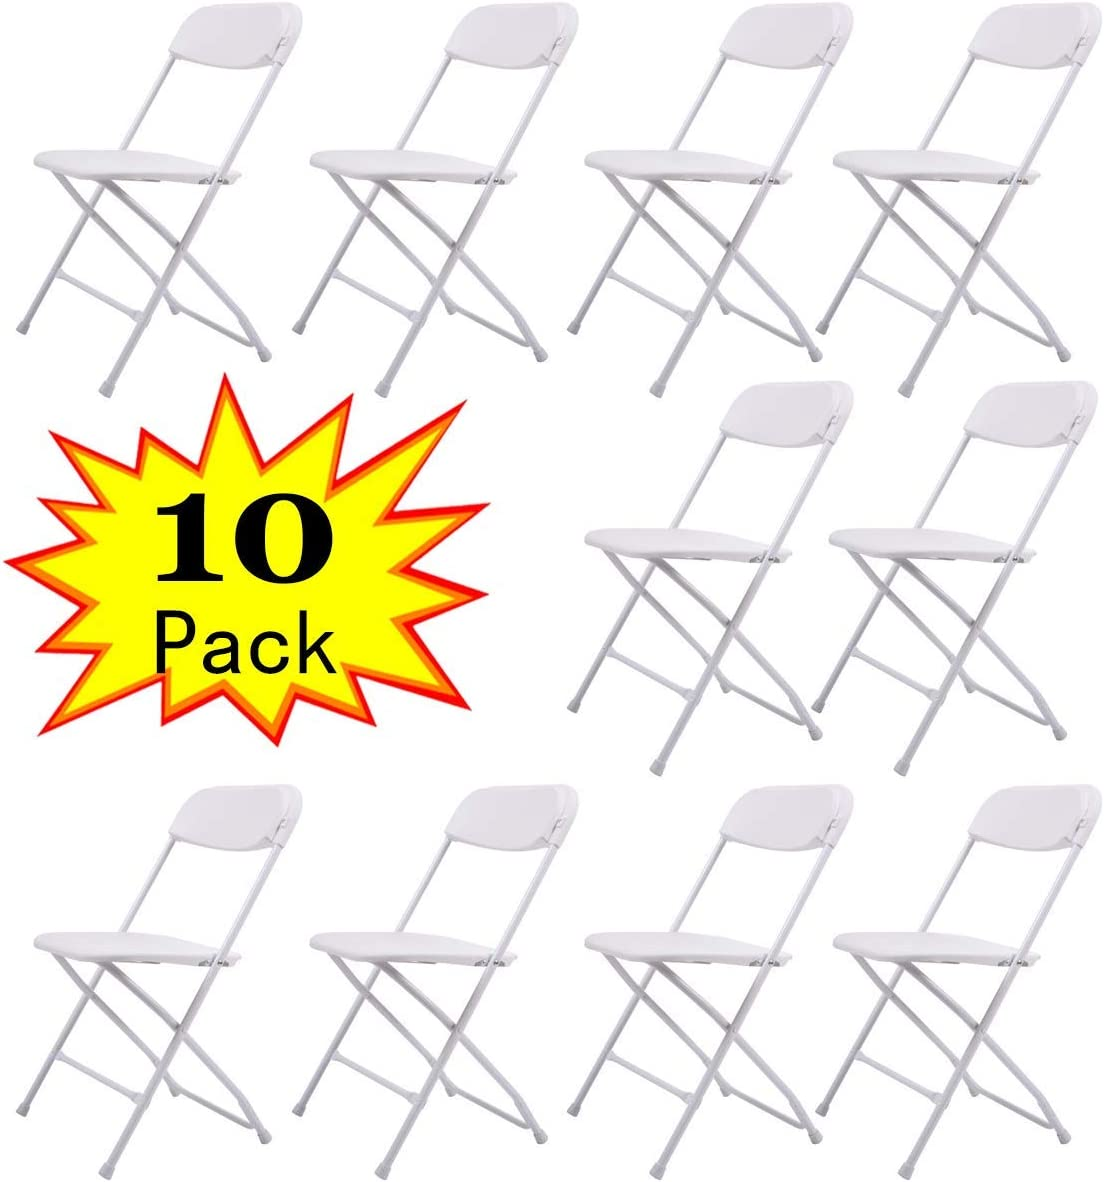 Sandinrayli 10-Pack White Plastic Folding Chair Commercial Quality Stackable Outdoor Event Chair